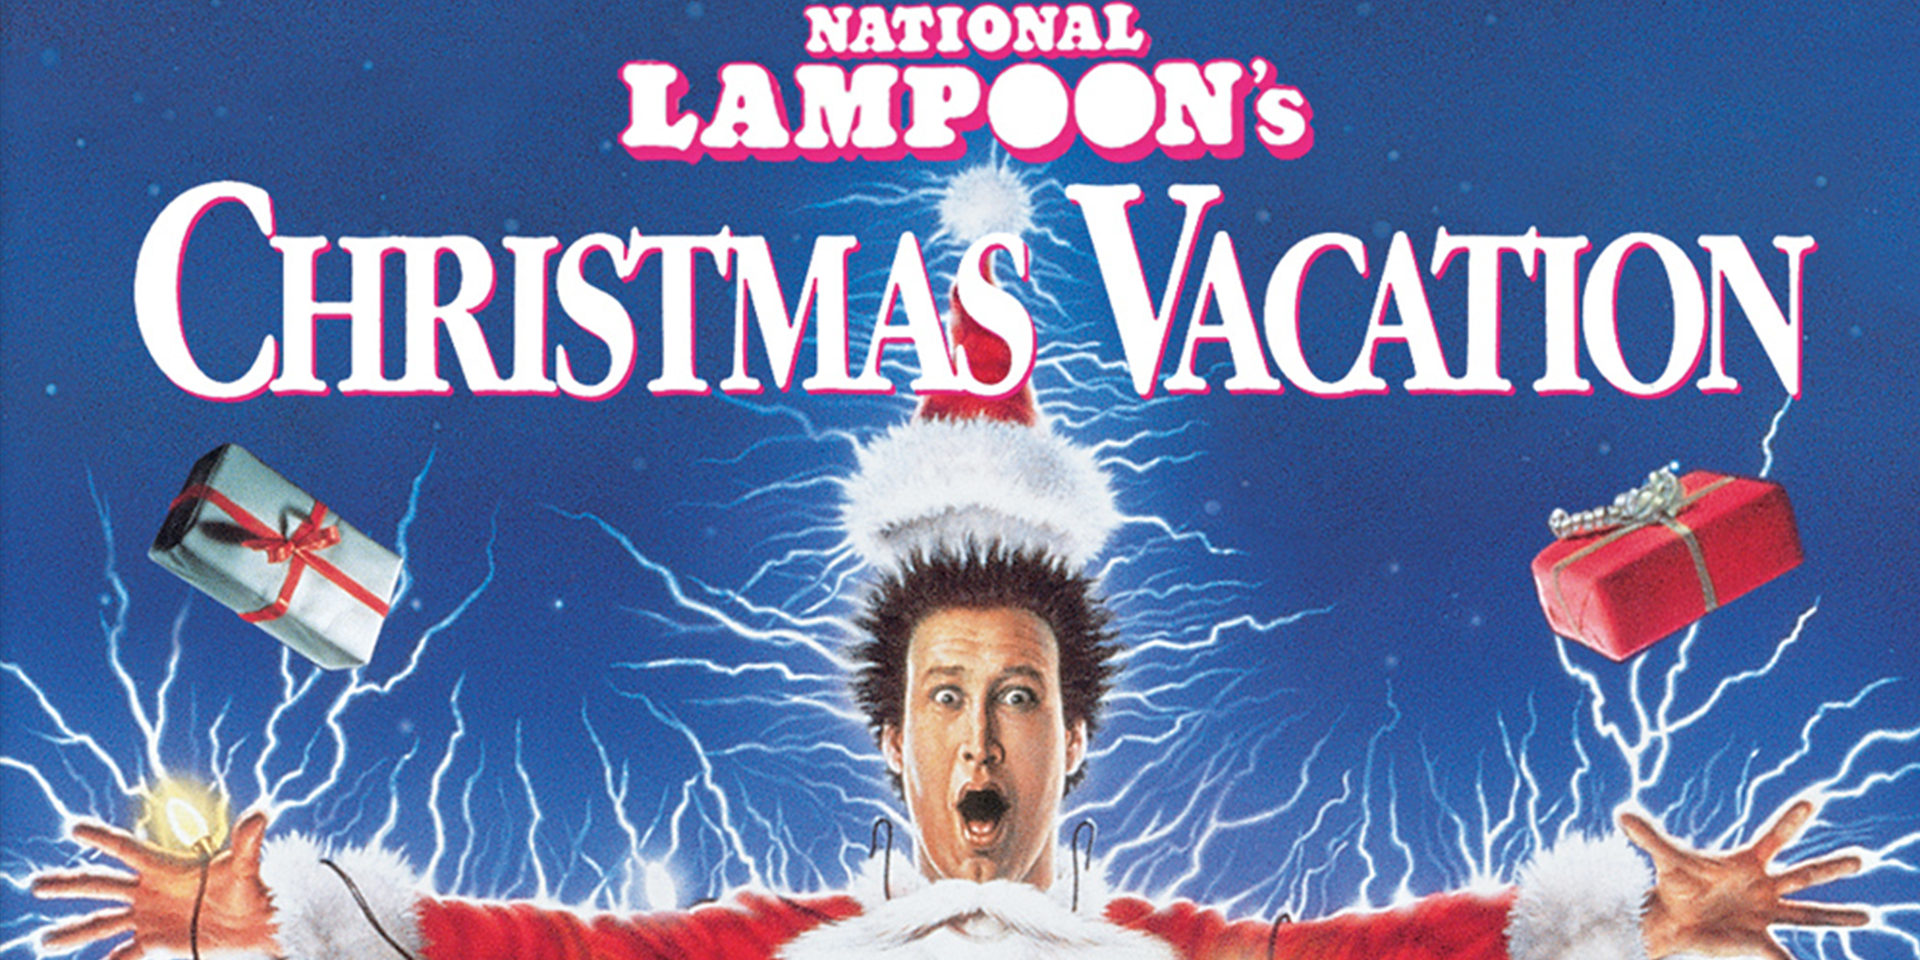 Christmas In Tennessee Vacation.National Lampoon S Christmas Vacation Sold Out Historic